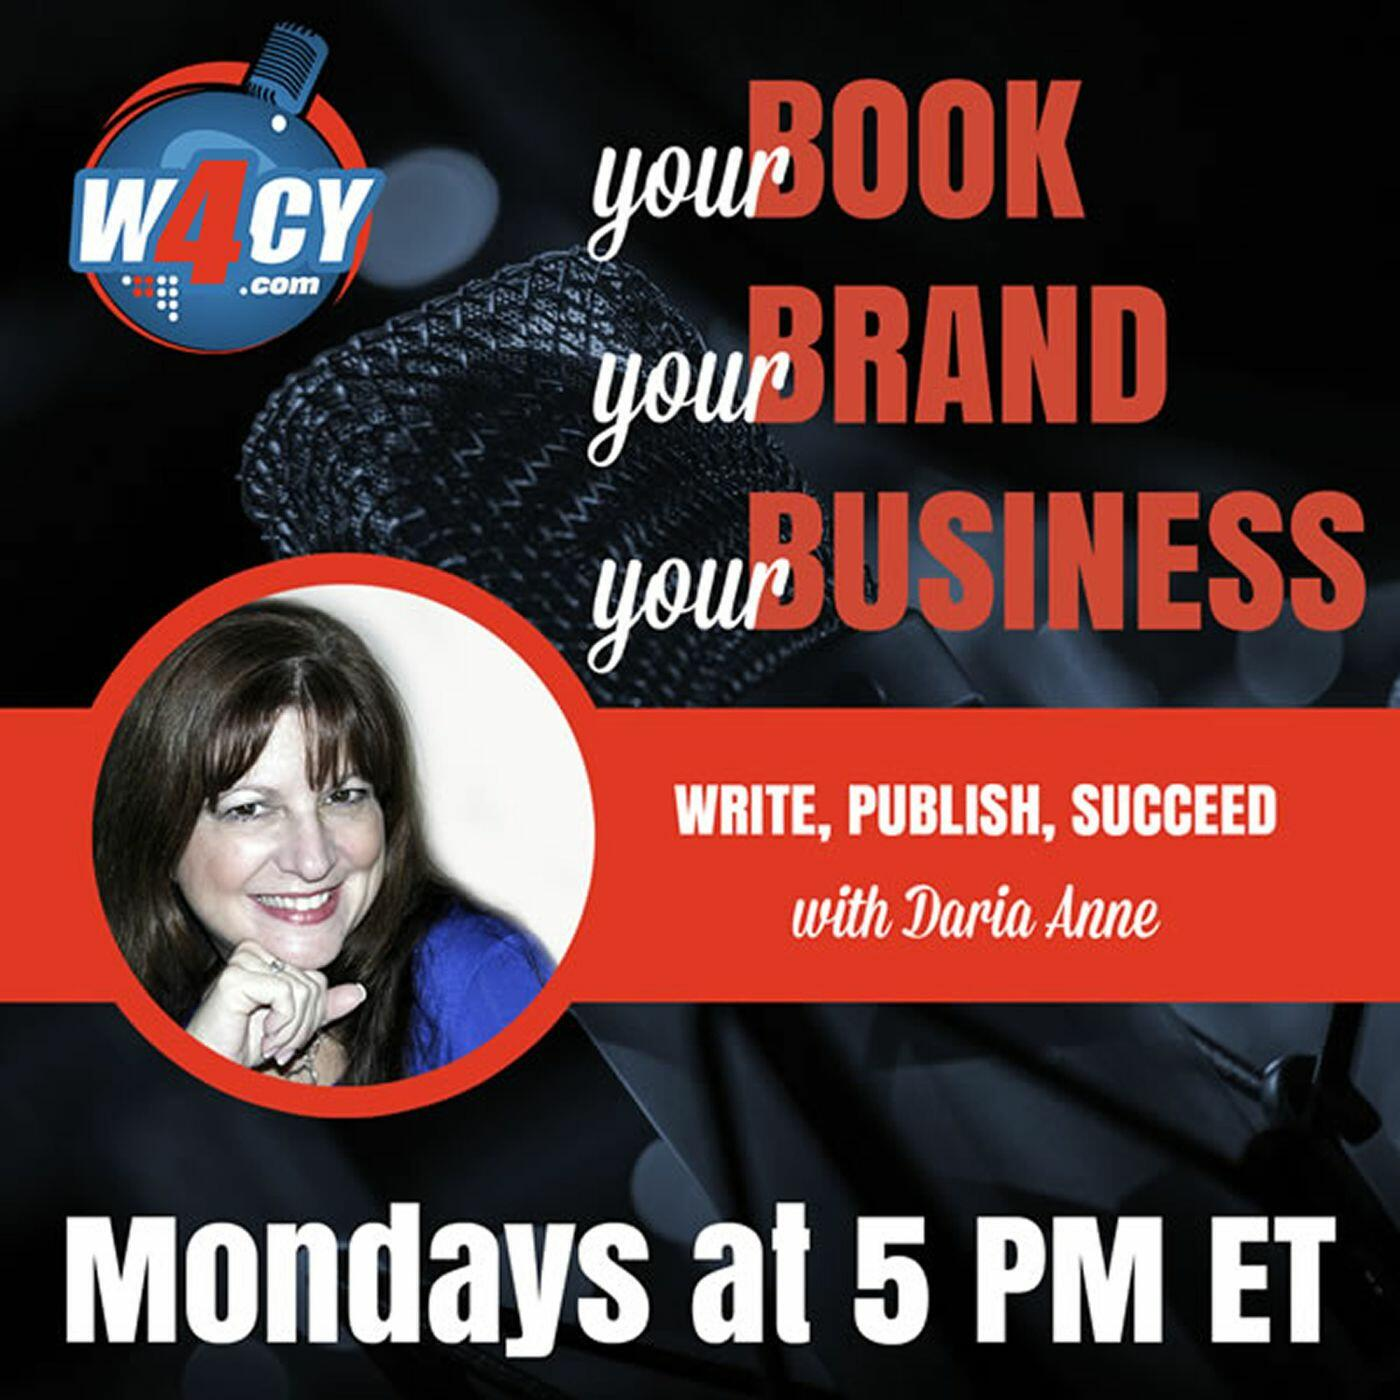 Listen to the Your Book, Your Brand, Your Business Episode - Heal Your Past & Live Today on iHeartRadio | iHeartRadio